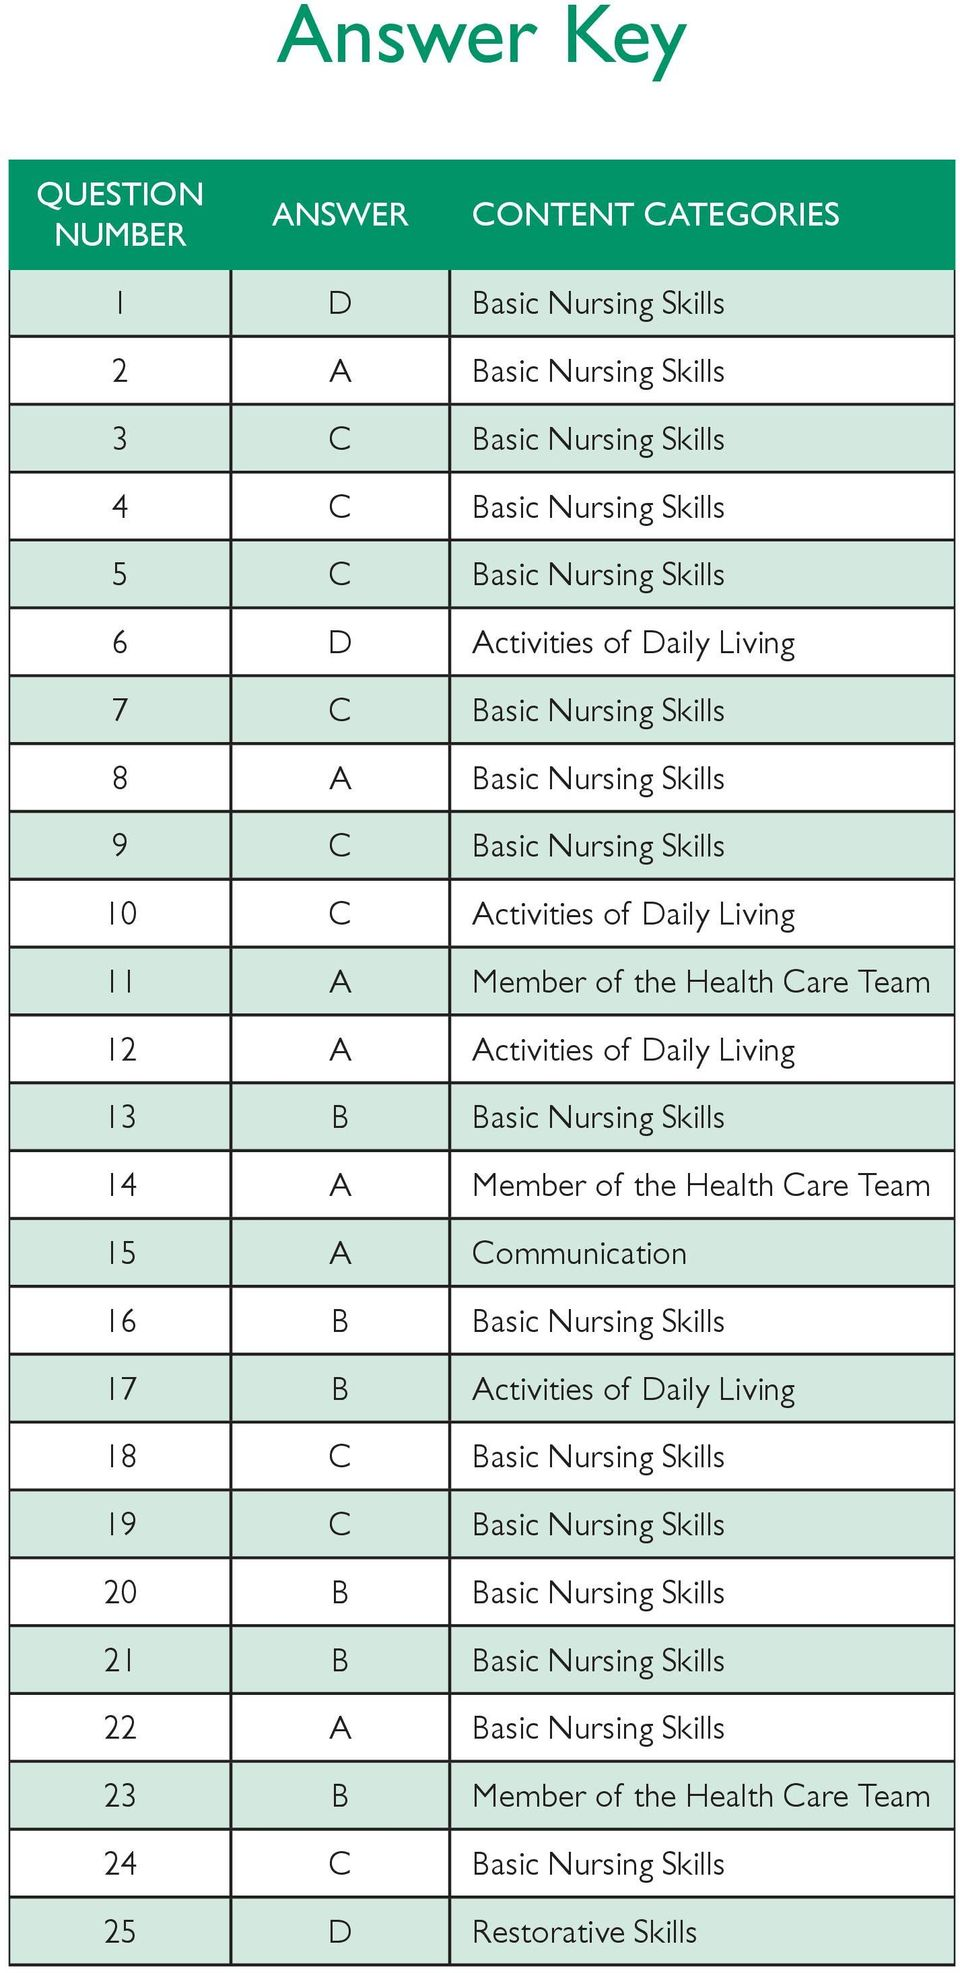 Activities of Daily Living 13 B Basic Nursing Skills 14 A Member of the Health Care Team 15 A Communication 16 B Basic Nursing Skills 17 B Activities of Daily Living 18 C Basic Nursing